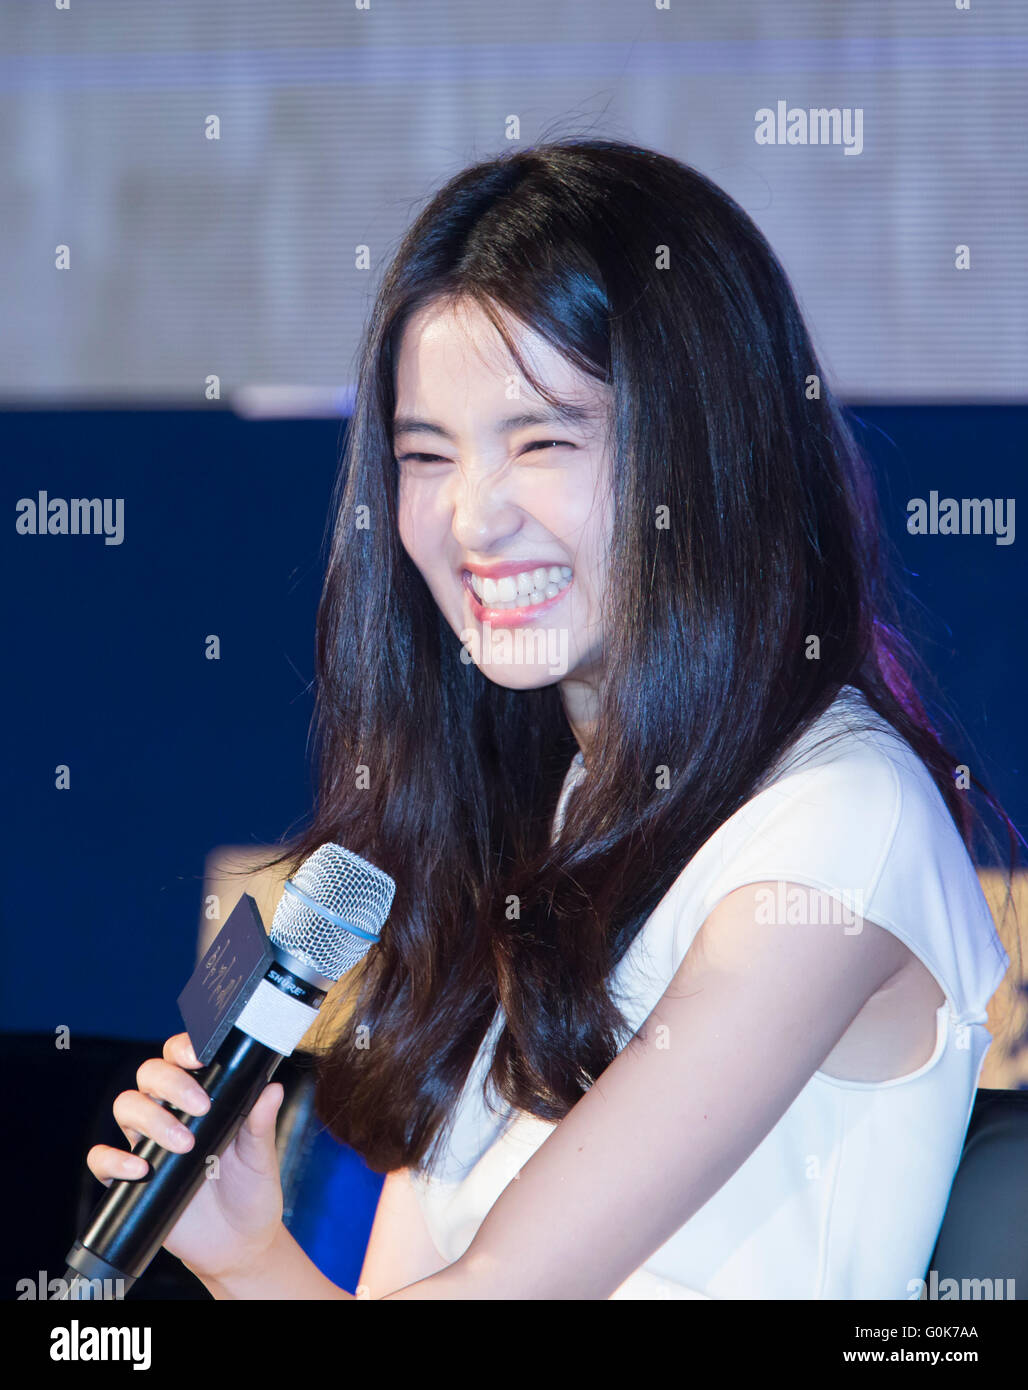 Kim Tae-ri, May 2, 2016 : South Korean actress Kim Tae-ri attends a press conference for her film, 'The Handmaiden' - Stock Image